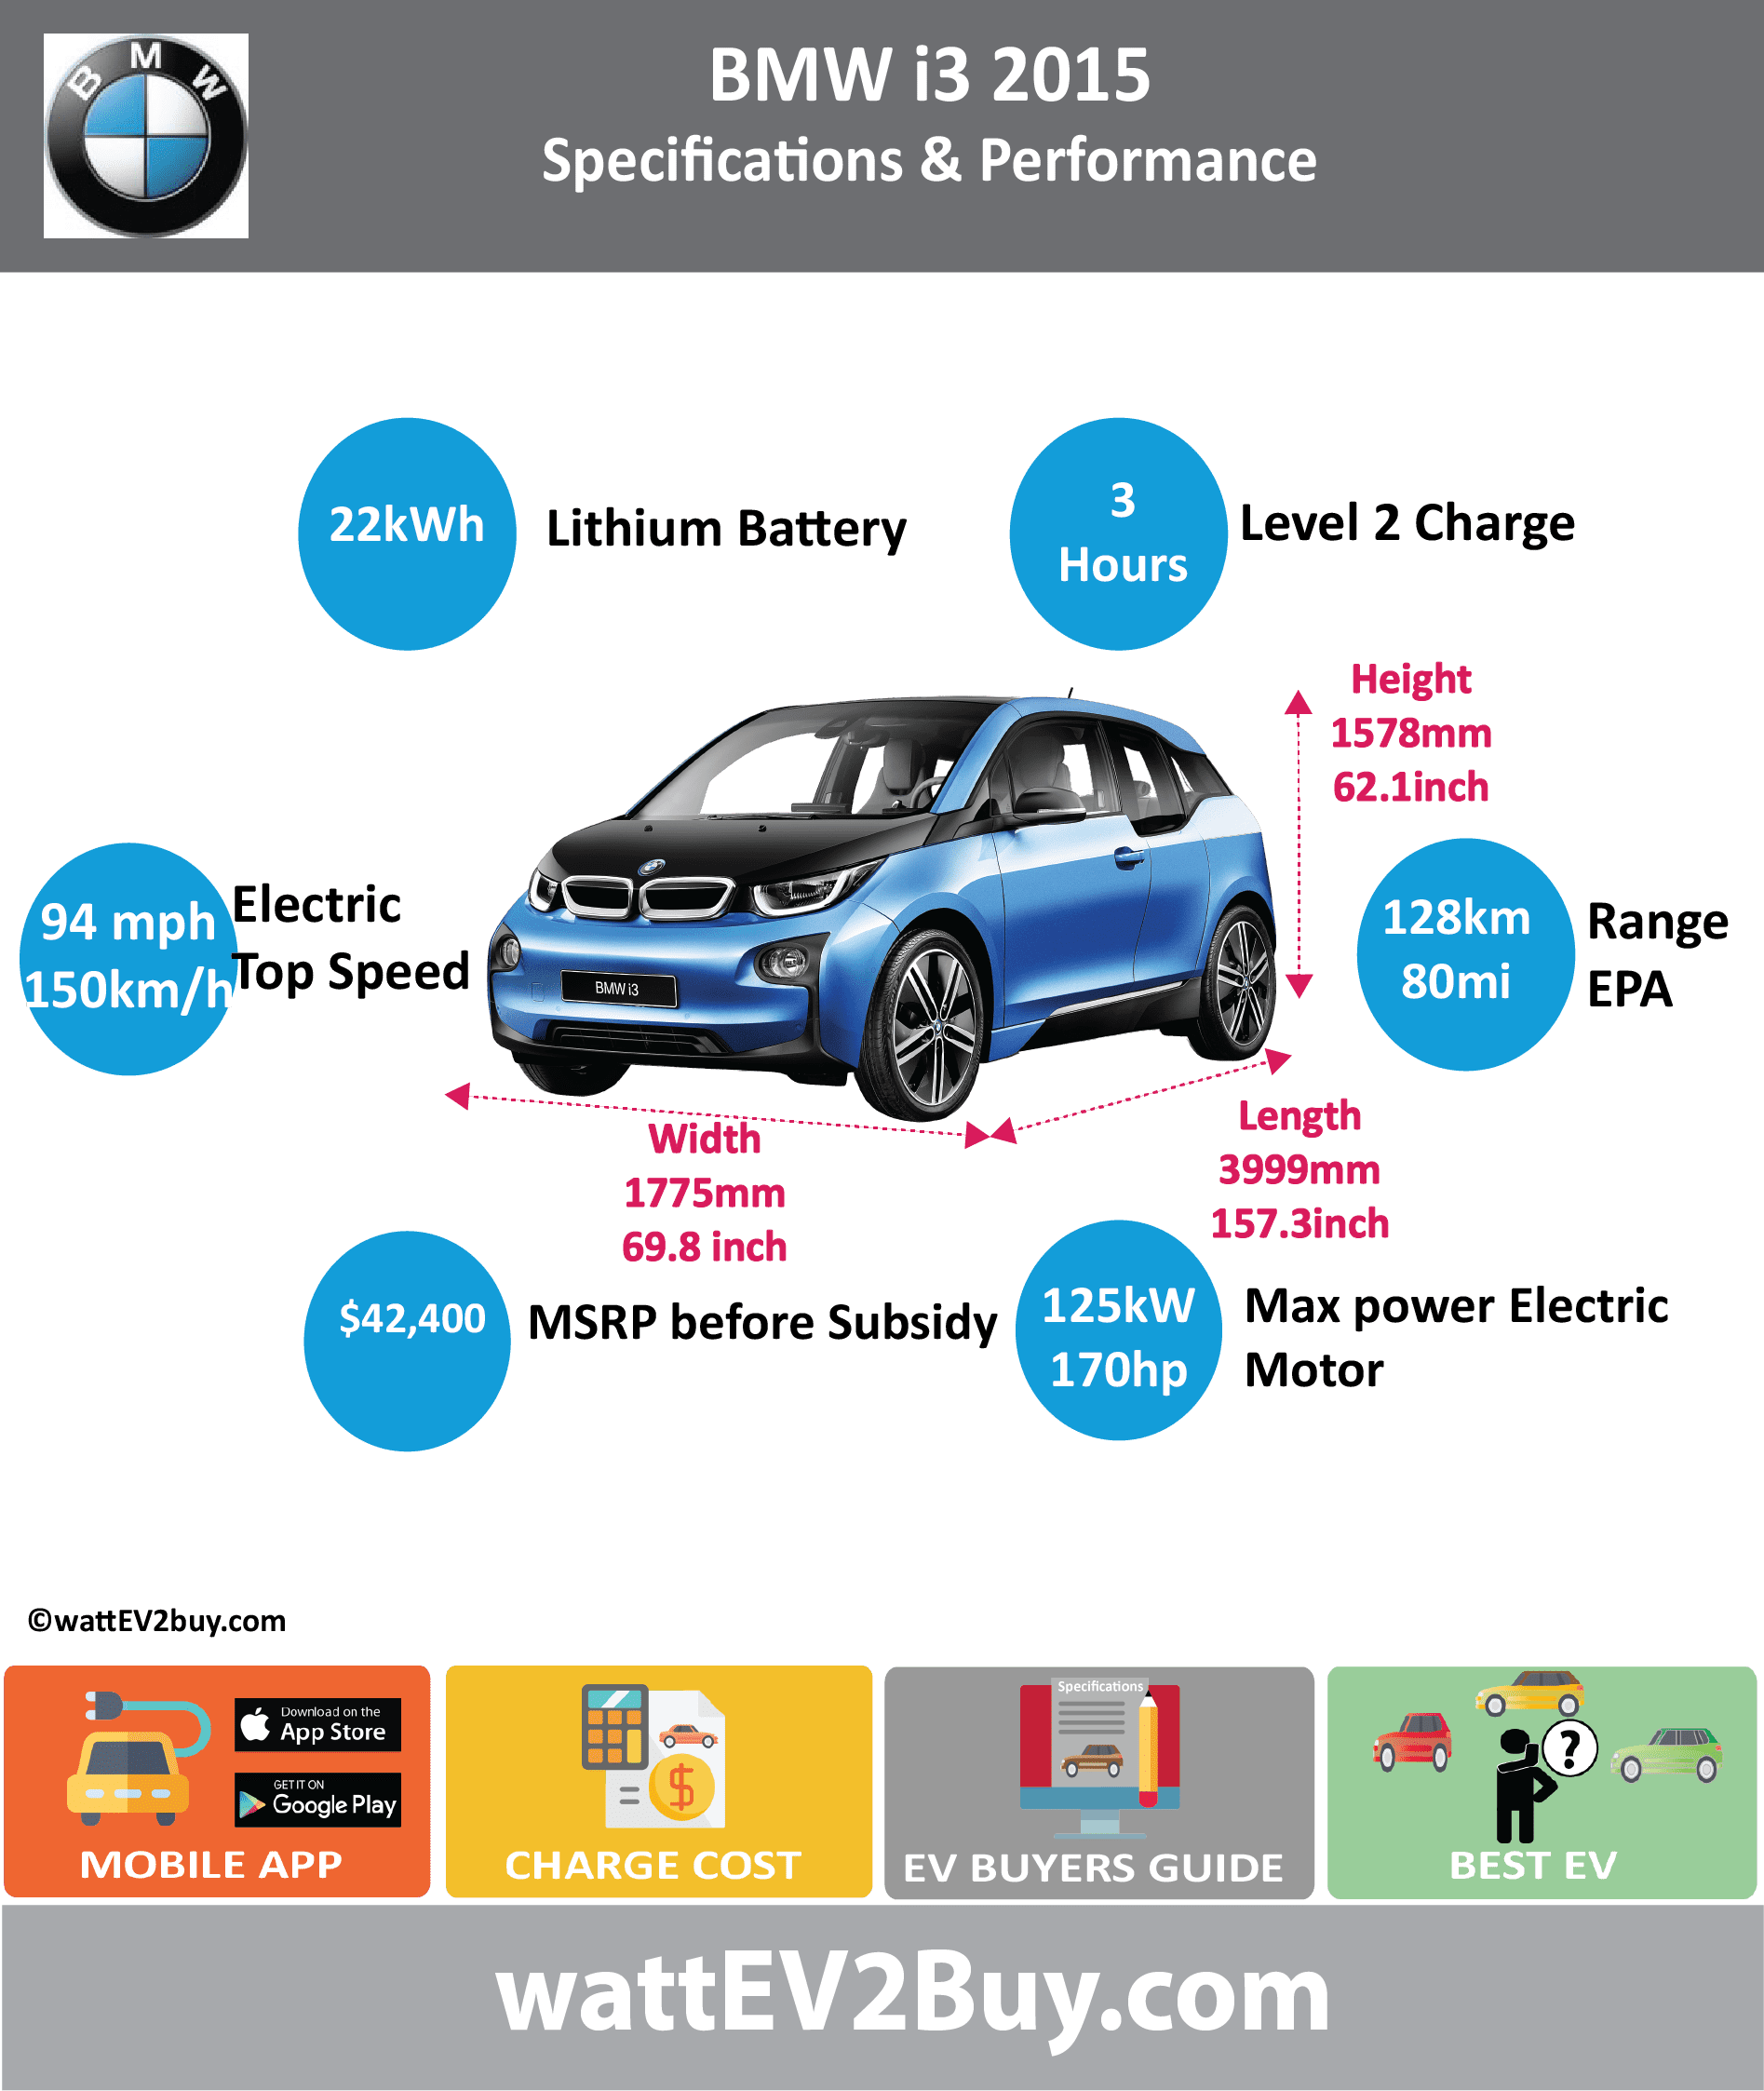 BMW i3 EV wattev2Buy.com 2015 2016 2017 2018 Battery Chemistry Battery Capacity kWh 22 33 33.2 Battery Nominal rating kWh 18.7 27 27.2 Voltage V 240 353 Amps Ah 94 94 Cells Modules Cooling Cycles Depth of Discharge (DOD) Energy Density Wh/kg Battery Manufacturer Samsung SDI Battery Warranty - years Battery Electric Range - NEDC Mi 125 200 Battery Electric Range - EPA Mi 80.0 114.0 Battery Electric Range - EPA km 128 180 Electric Top Speed - mph 93.75 Electric Top Speed - km/h 150 Acceleration 0 - 100km/h sec Onboard Charger kW 7.4 LV 1 Charge kW LV 1 Charge Time (Hours) 16 10 LV 2 Charge kW LV 2 Charge Time (Hours) 4 6 3.45 LV 3 CCS/Combo kW 50 LV 3 Charge Time (min to 80%) 39 Charge Connector SAE J1772 MPGe Combined - miles 118 MPGe Combined - km MPGe City - miles 137 129 MPGe City - km MPGe Highway - miles 111 106 MPGe Highway - km Max Power - hp 170 Max Power - kW 125 Max Torque - lb.ft 184 Max Torque - N.m 250 Electric Motor Rear Electric Motor Front Electric Motor Output 75 Transmission Energy Consumption kWh/100km MSRP (before incentives & destination) $42,400 $44,595 Vehicle Doors Seating Dimensions GVWR (kg) Curb Weight (kg) Payload Capacity (lbs) Towing Capacity (lbs) Ground Clearance (mm) Lenght (mm) 3999 4011 Width (mm) 1775 1775 Height (mm) 1578 1598 Wheelbase (mm) 2570 2570 Lenght (inc) 157.3 157.8 Width (inc) 69.8 69.8 Height (inc) 62.1 62.9 Wheelbase (inc) 101.1 101.1 Other Market Class First Delivery Safety Level